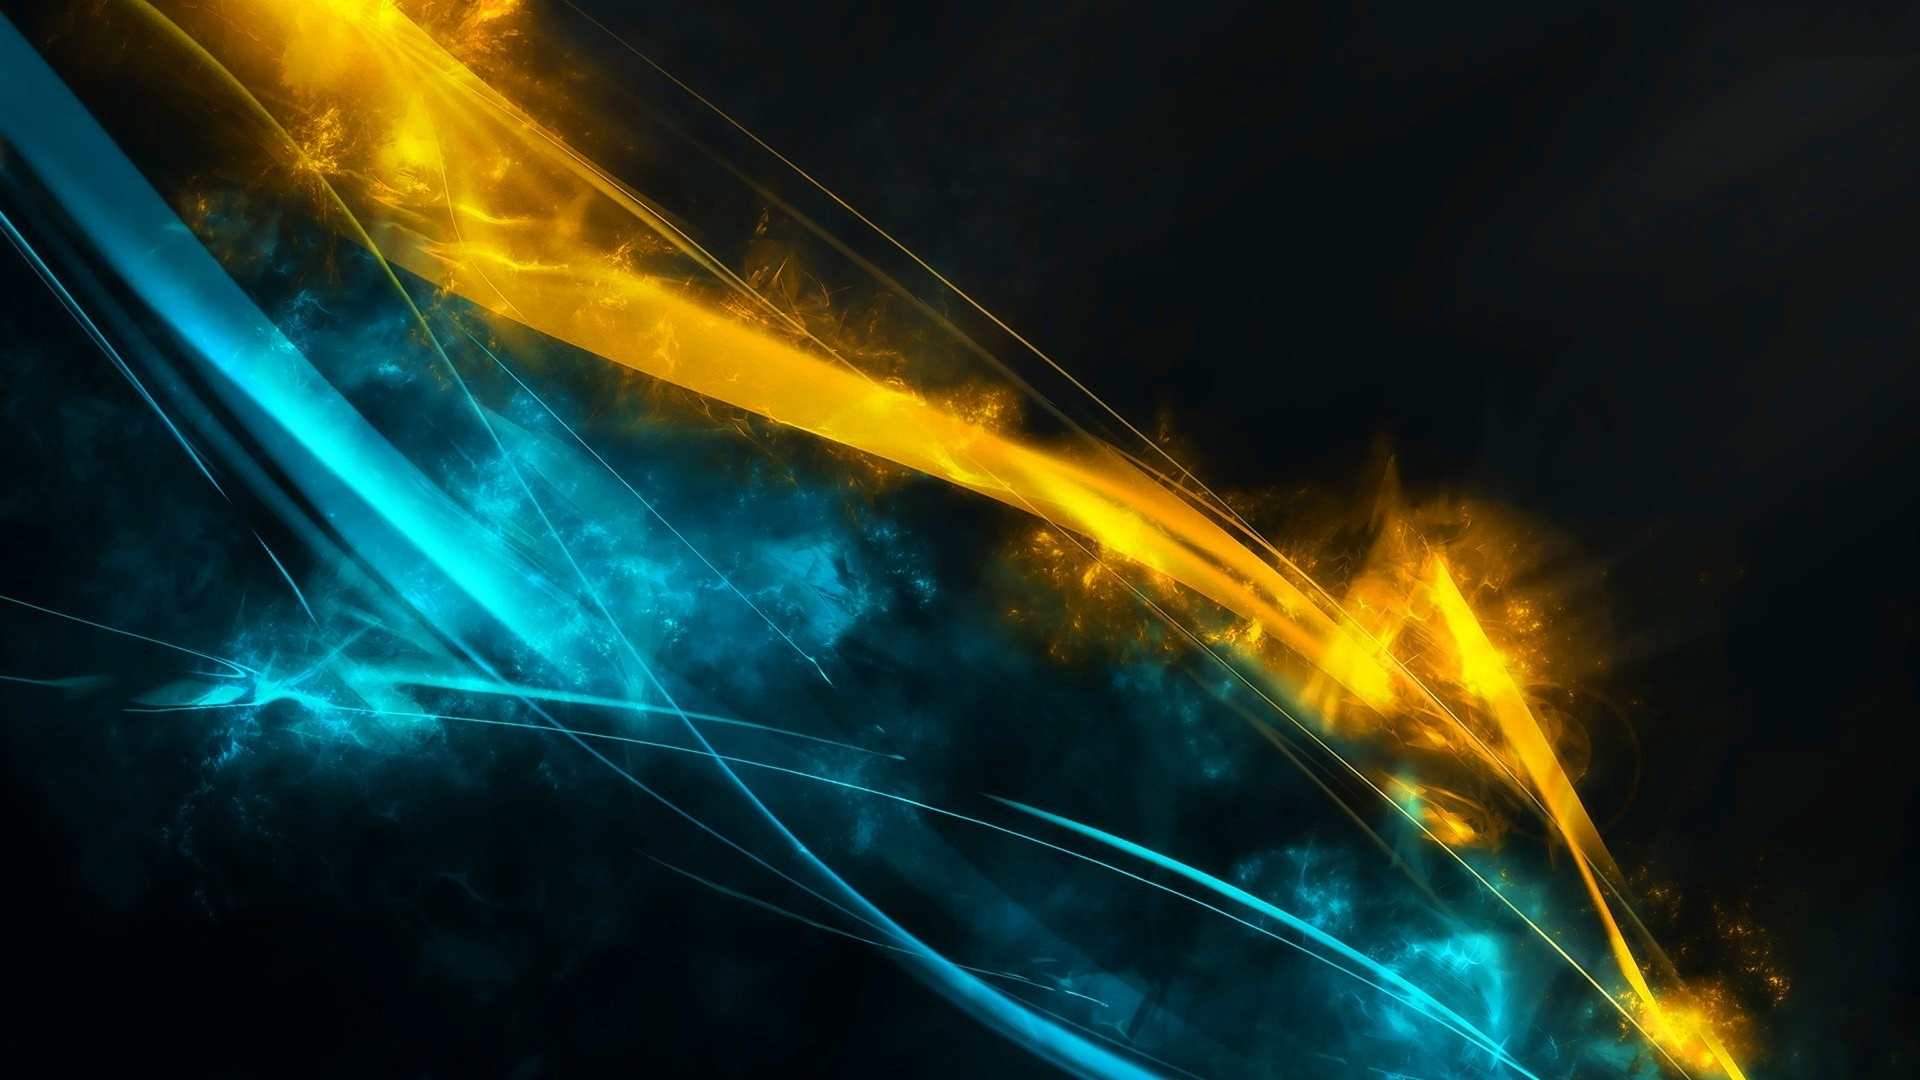 Free Download Blue And Gold Wallpaper